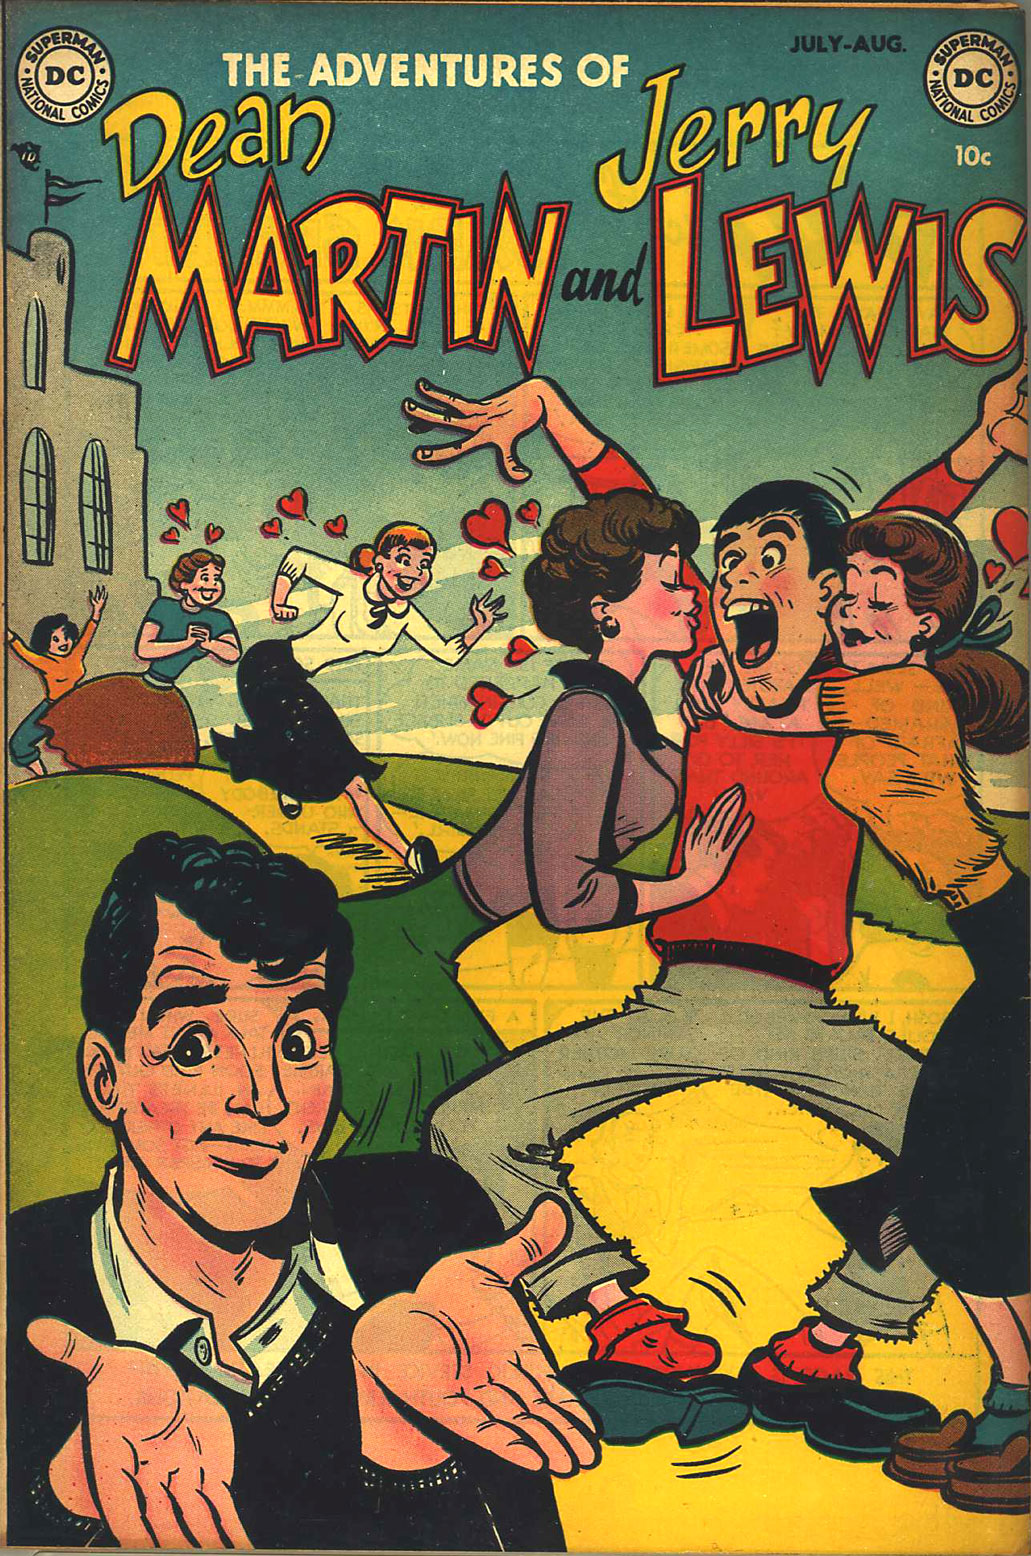 The Adventures of Dean Martin and Jerry Lewis 1 Page 1